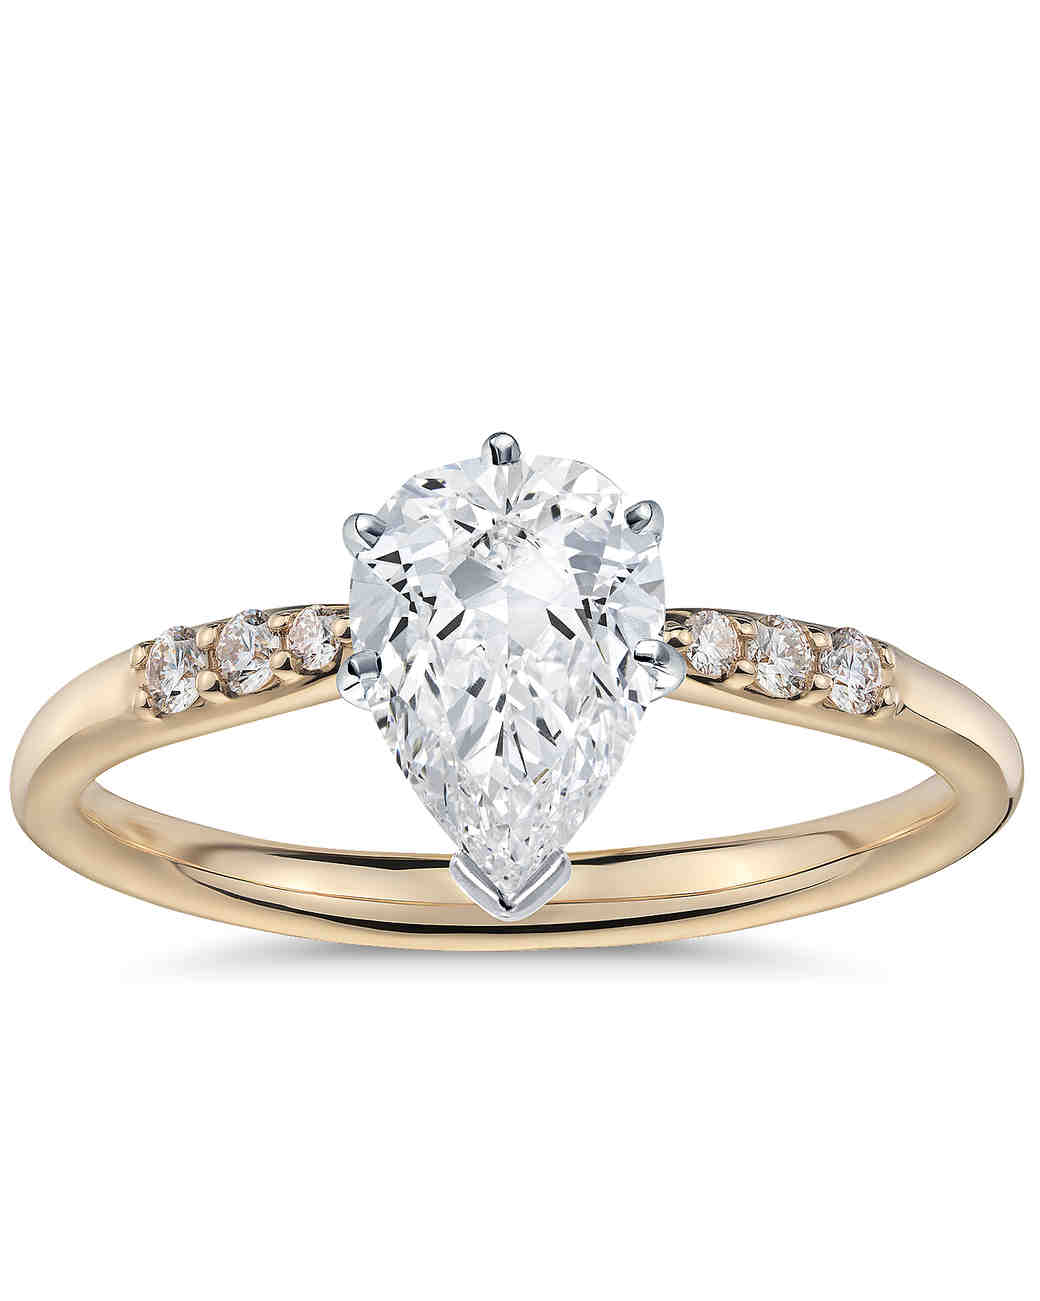 bridal v wedding set carat artemer rings crown ring for with diamond her pear products